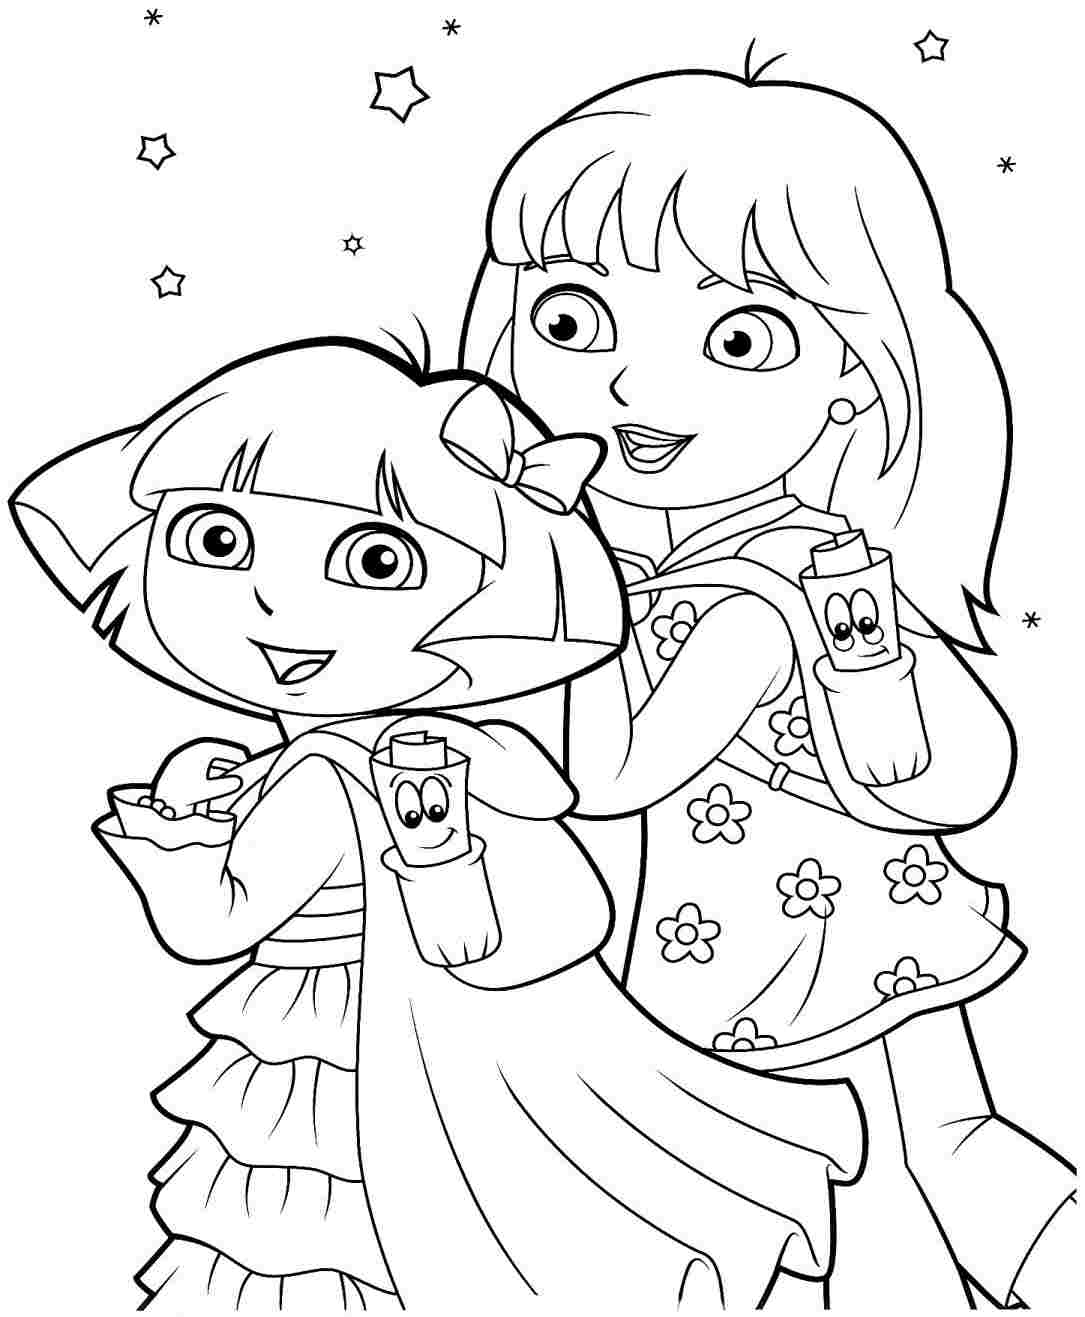 20 Dora and Friends Coloring Pages Collections | FREE ...